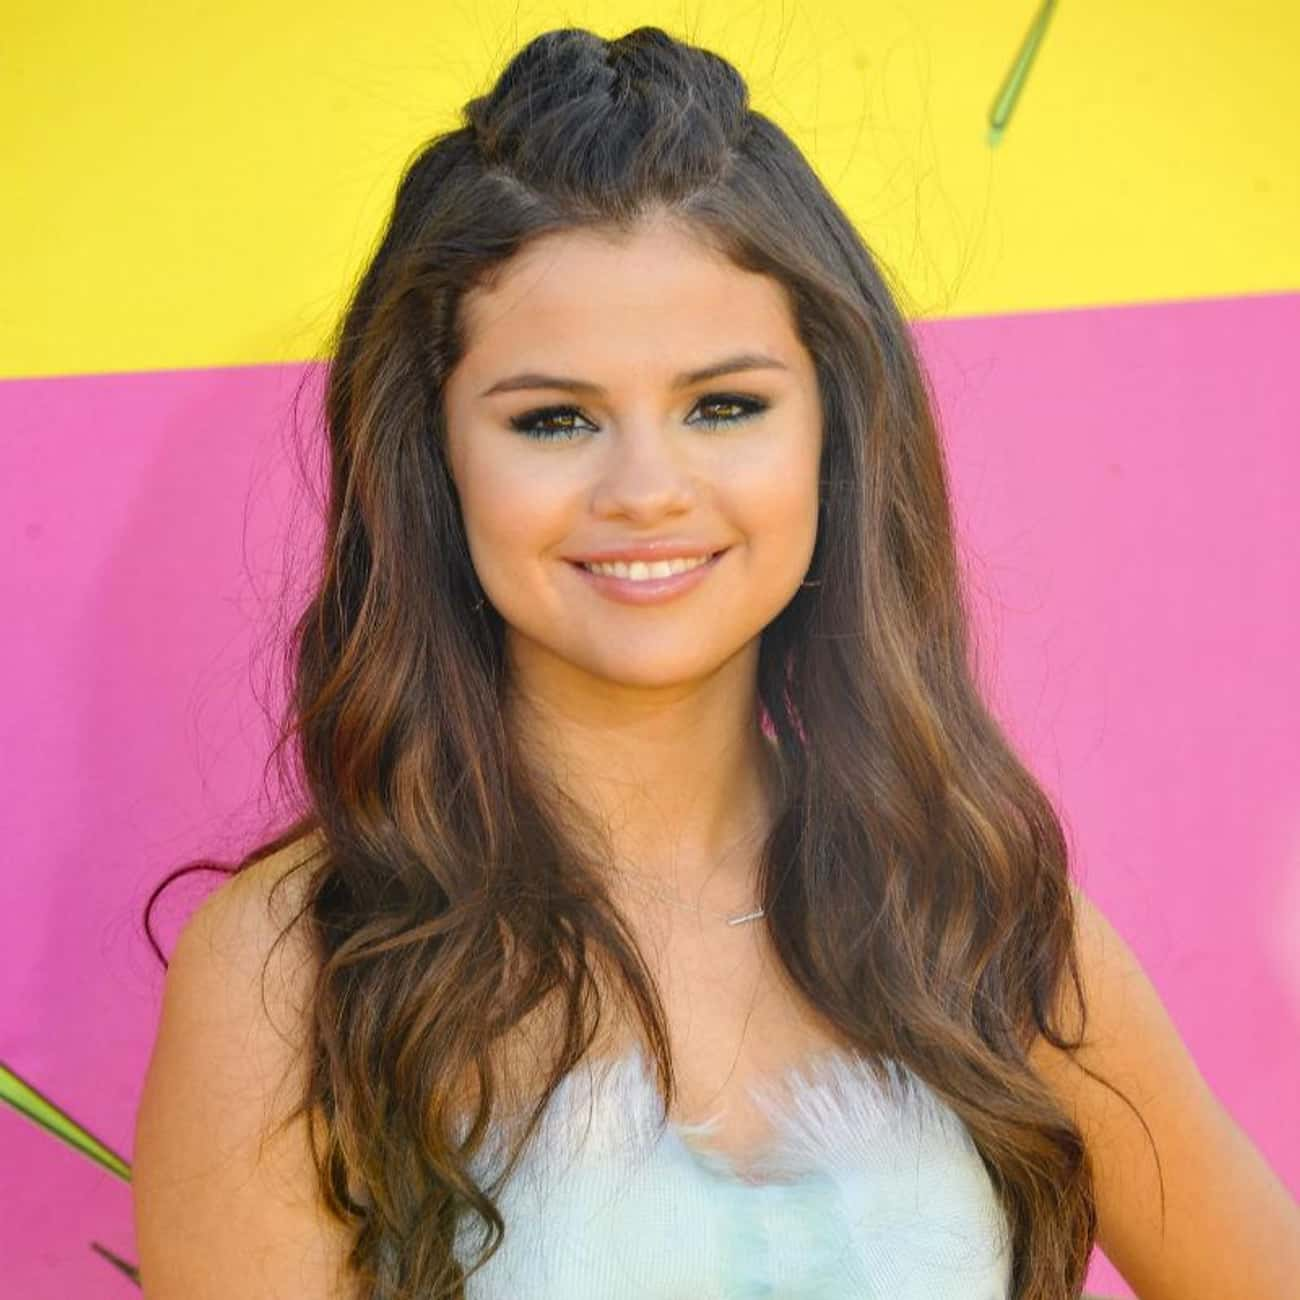 Selena Gomez is listed (or ranked) 4 on the list Celebrities Who Went to The Meadows Rehab